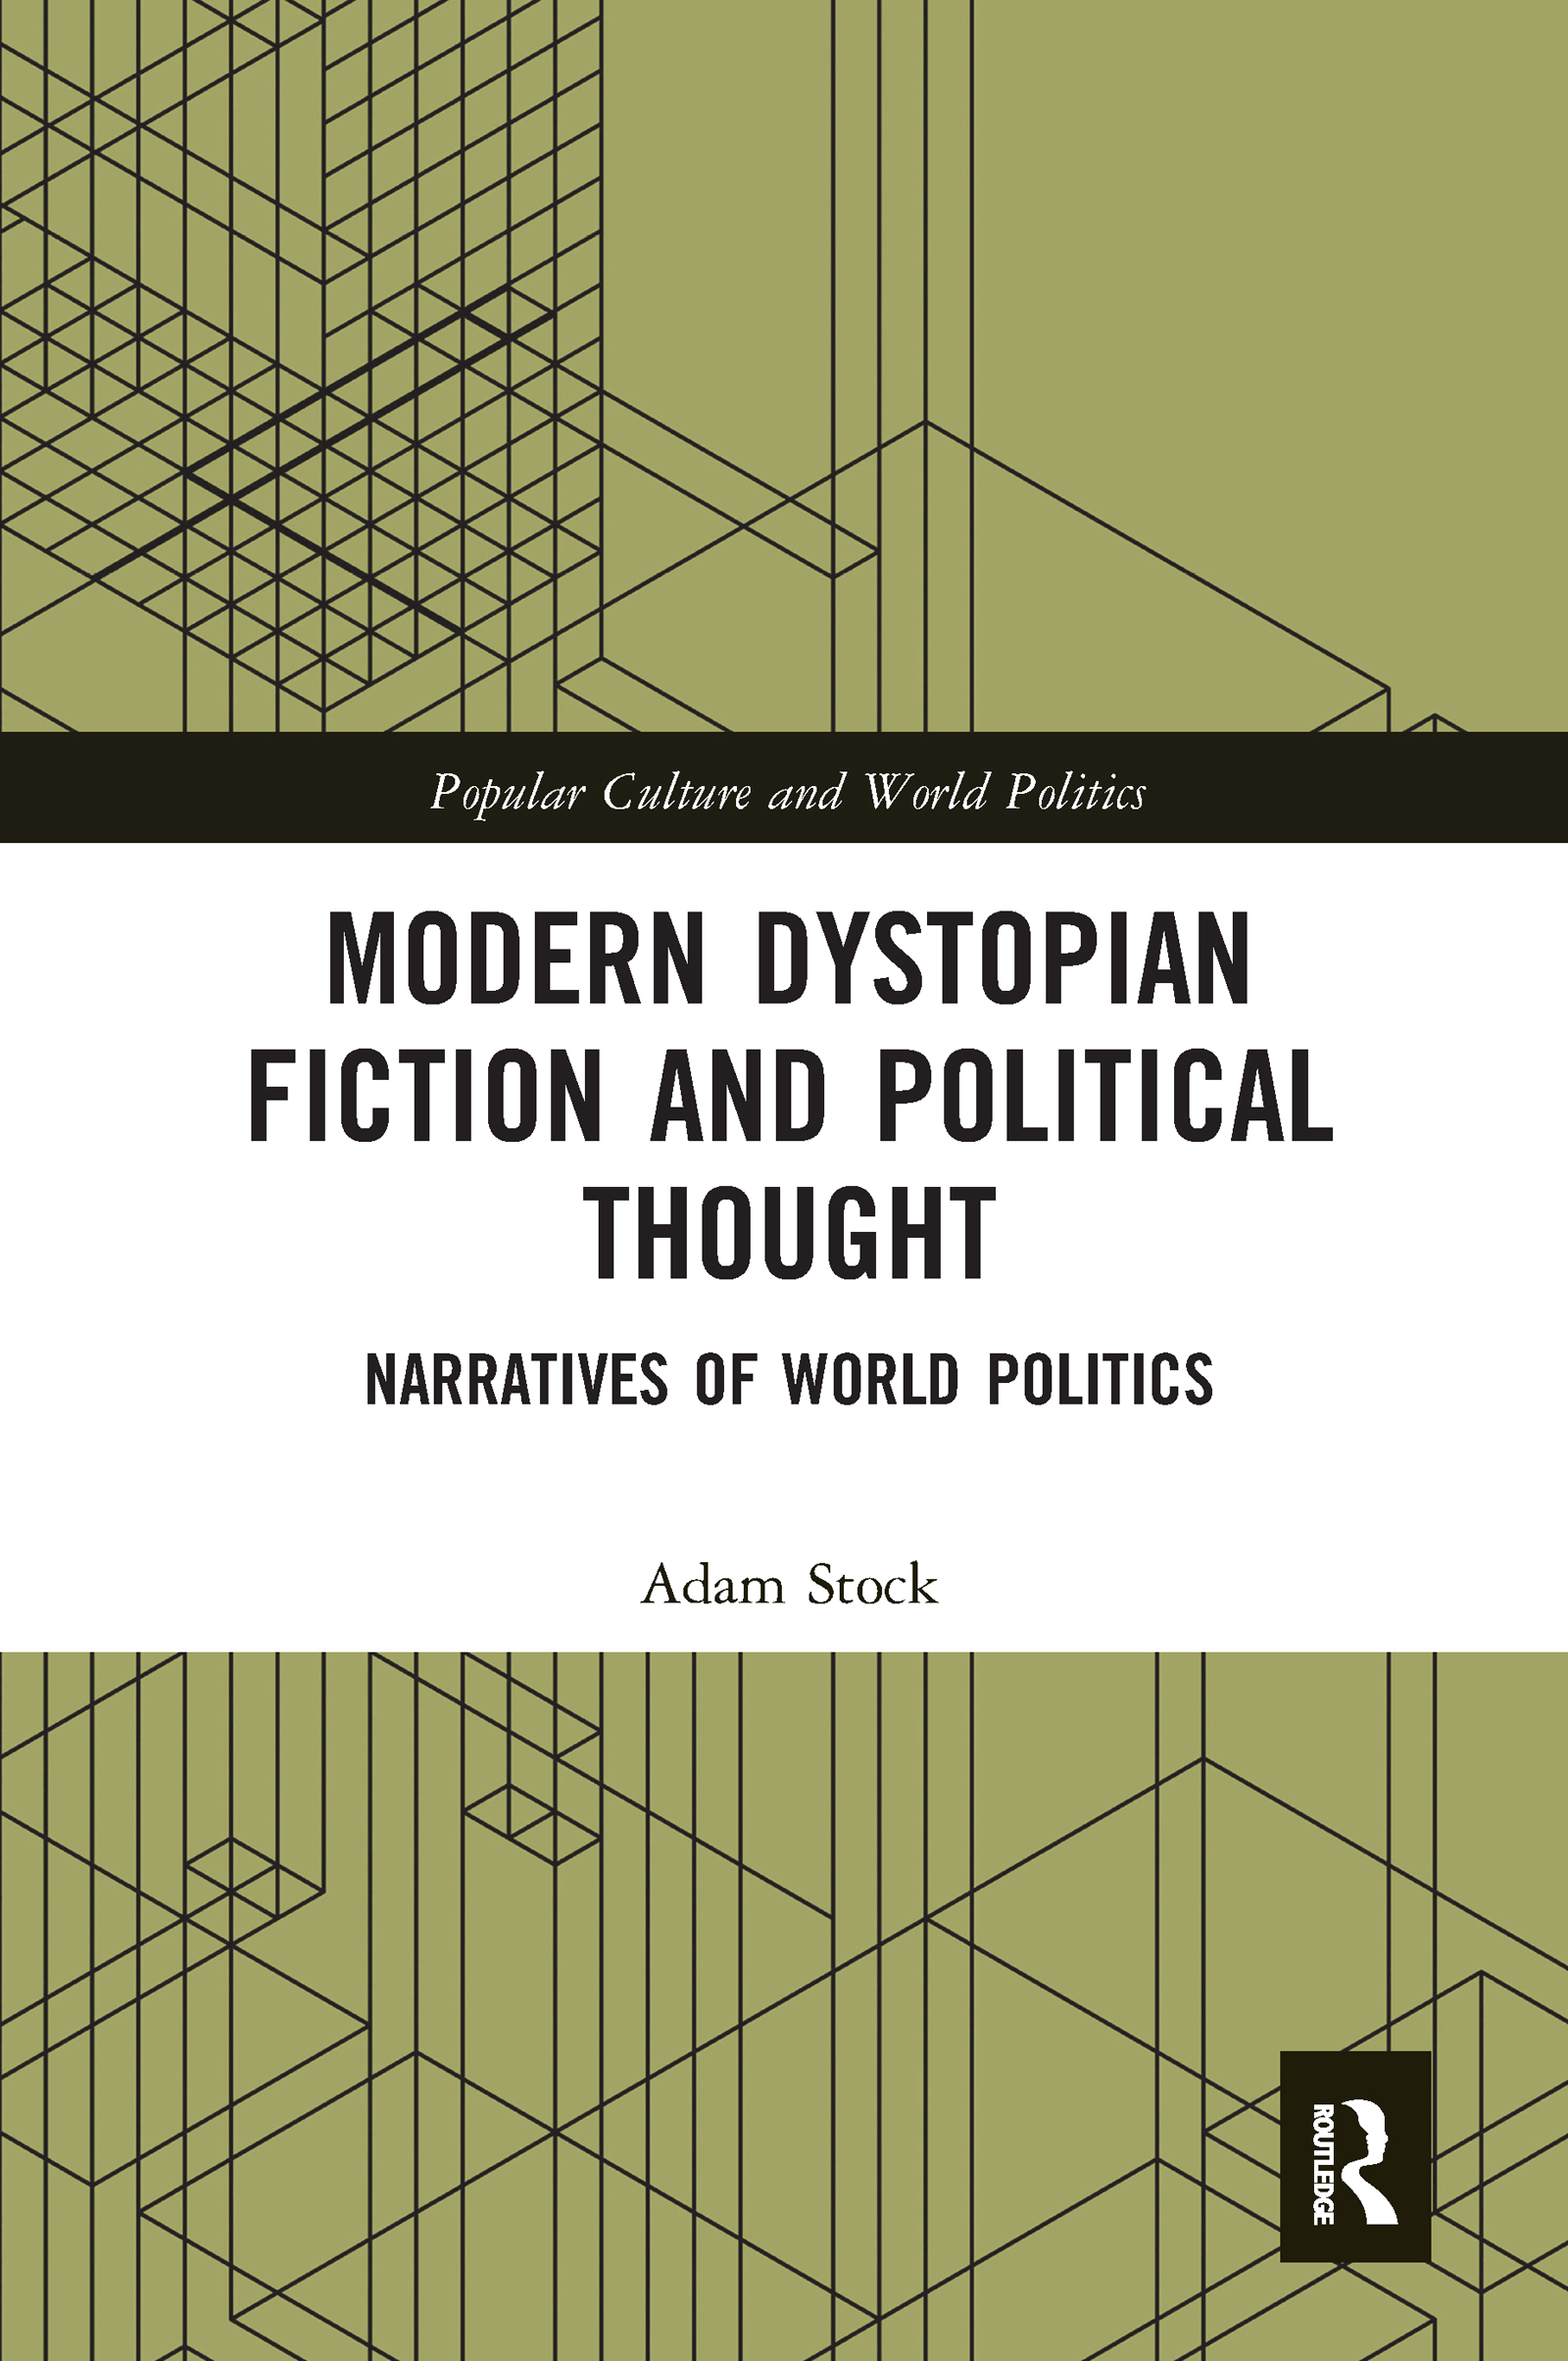 Modern Dystopian Fiction and Political Thought